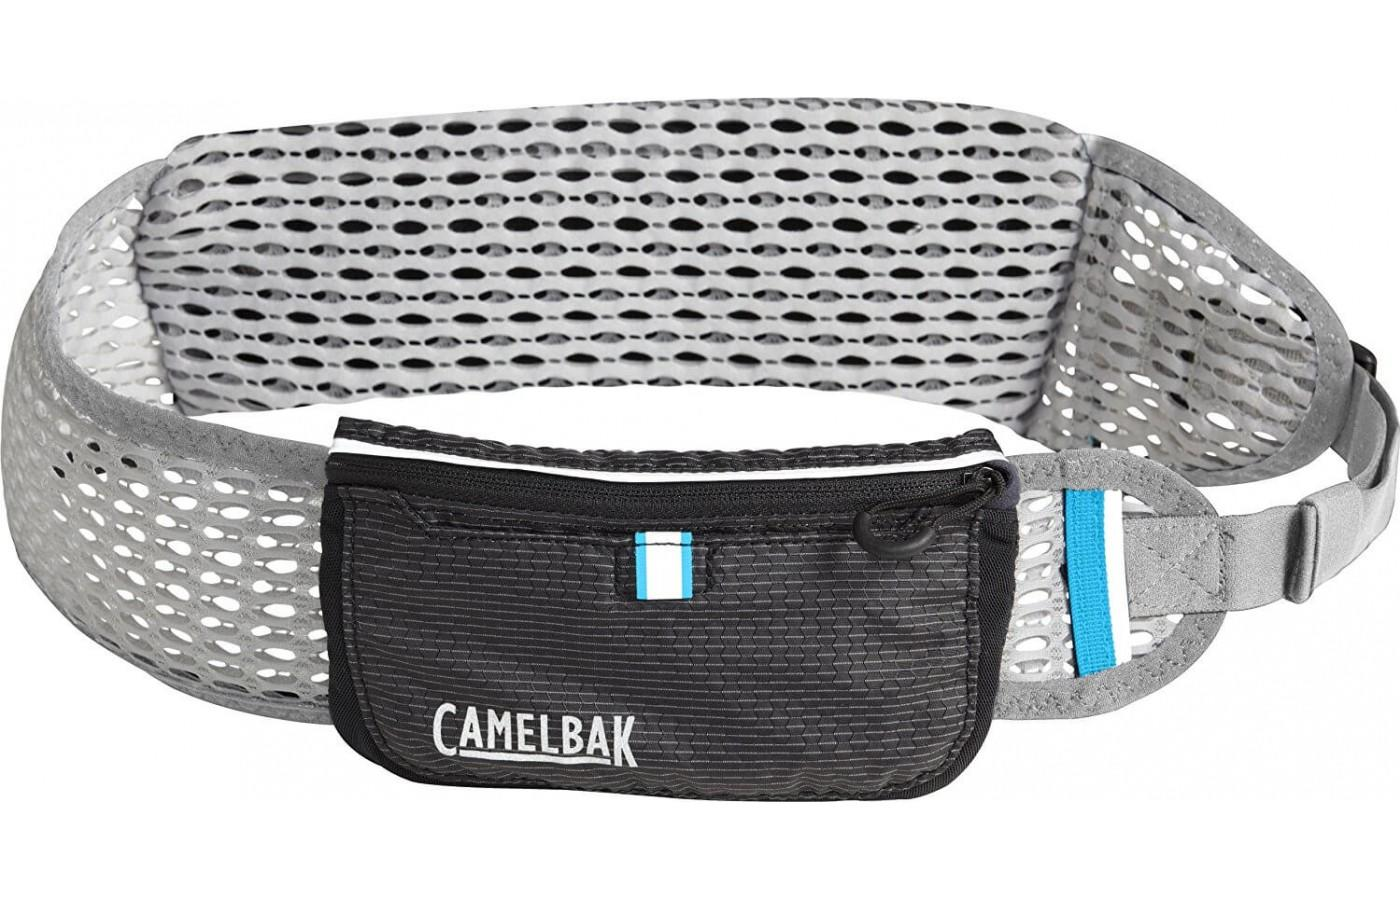 The CamelBak Ultra Belt is designed to offer hands-free water storage to runners.